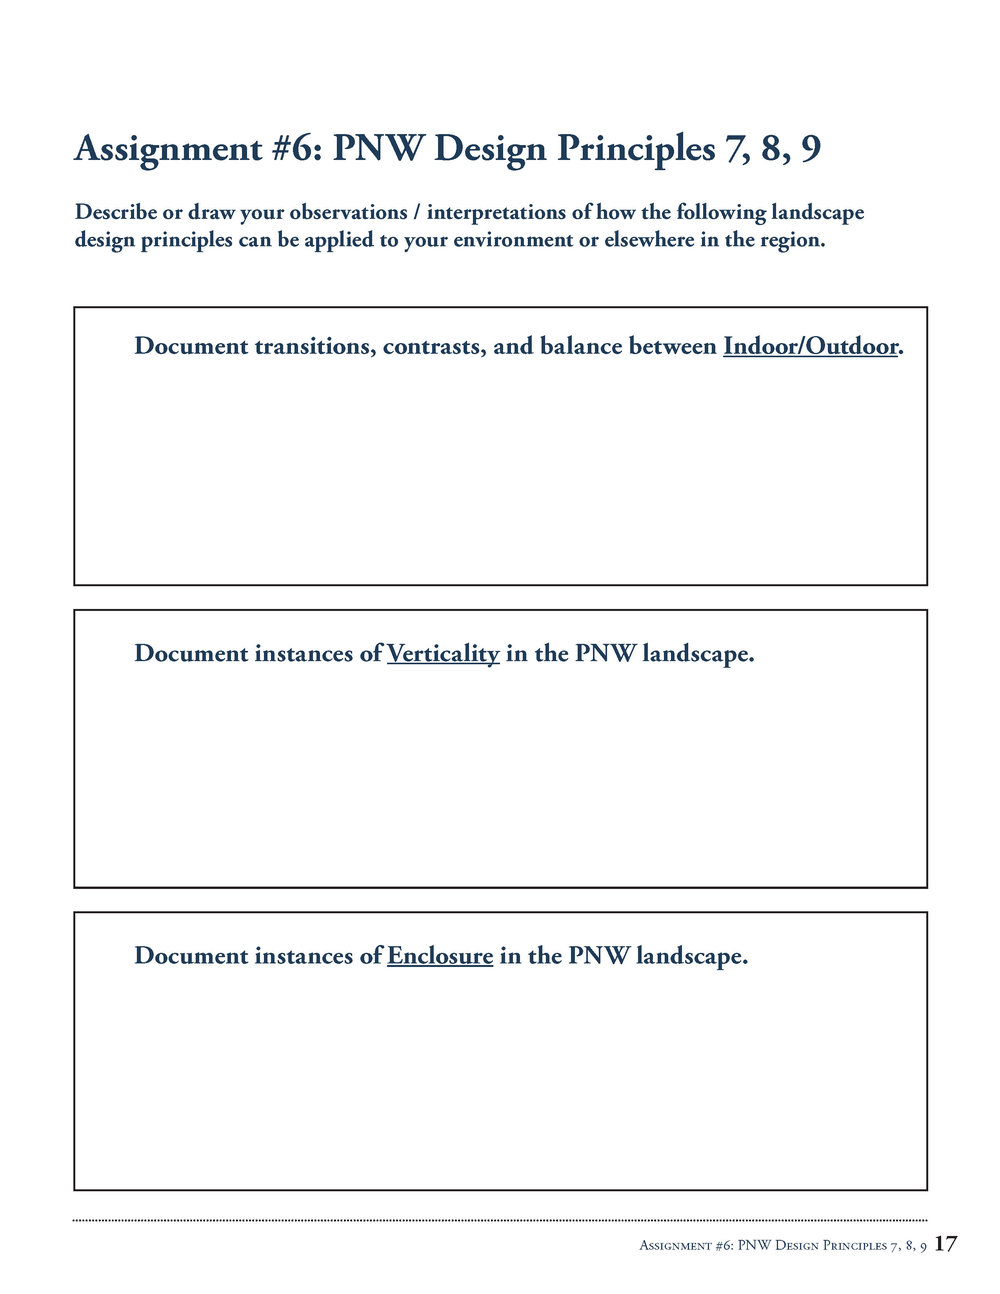 Guadagni_LCC_PNW_Workbook (dragged) 8.jpg